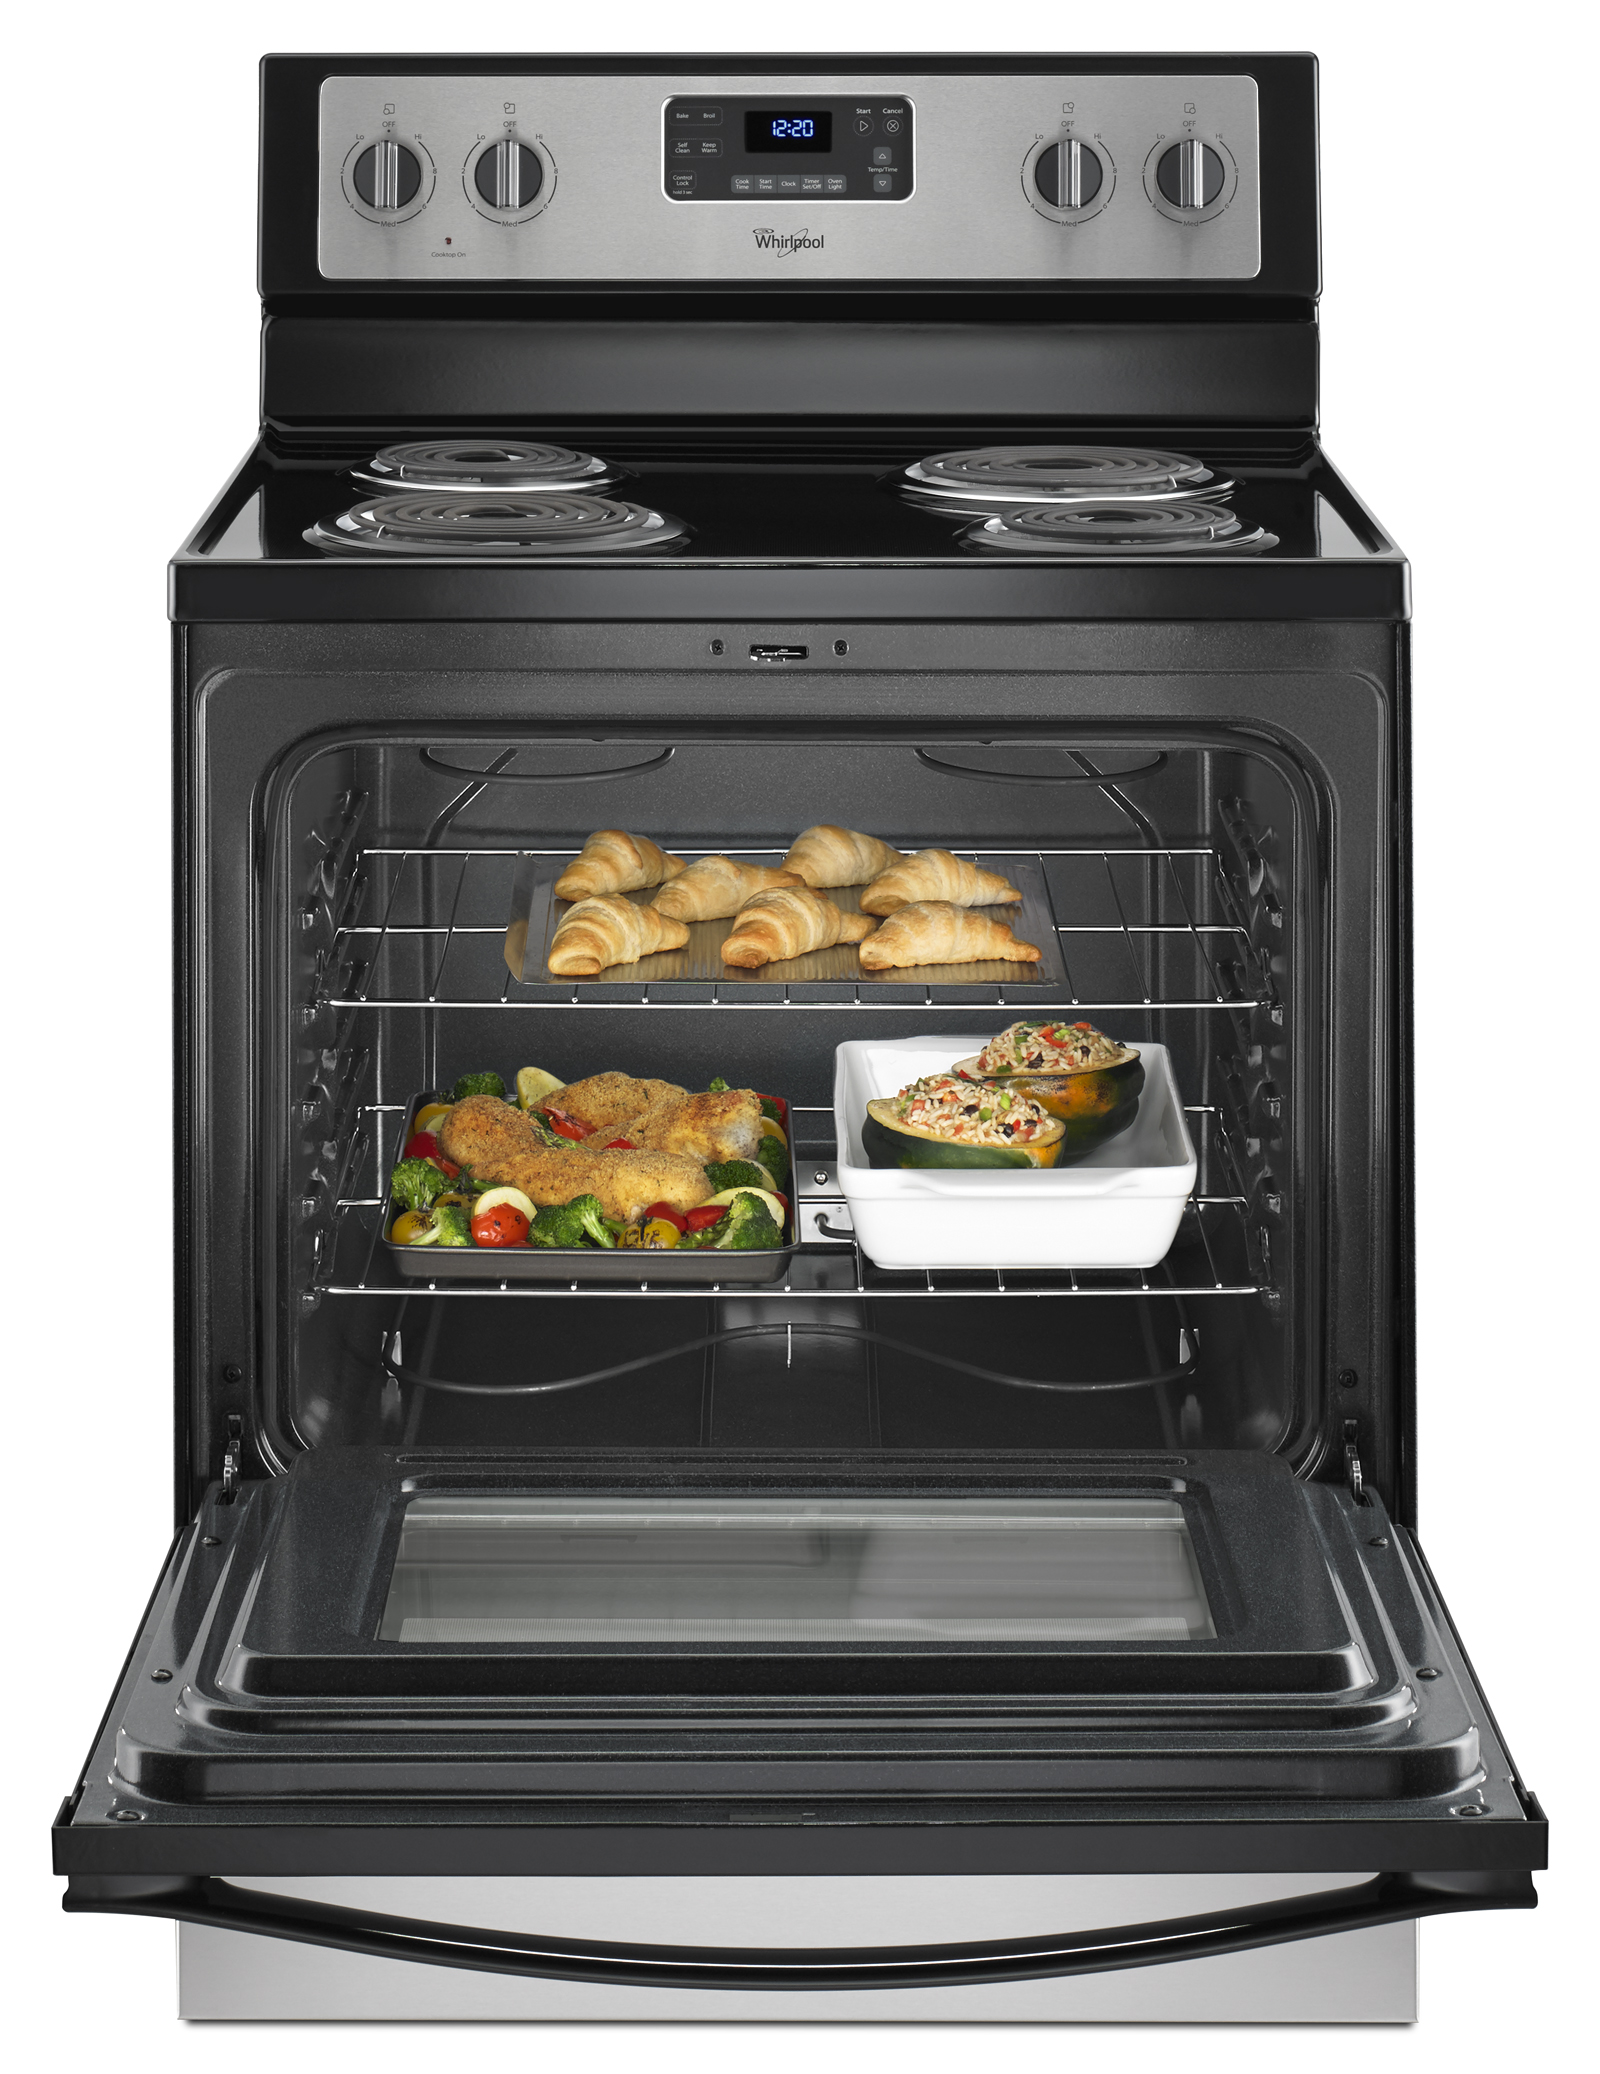 Whirlpool WFC310S0ES 4.8 cu. ft. Freestanding Electric Range - Stainless